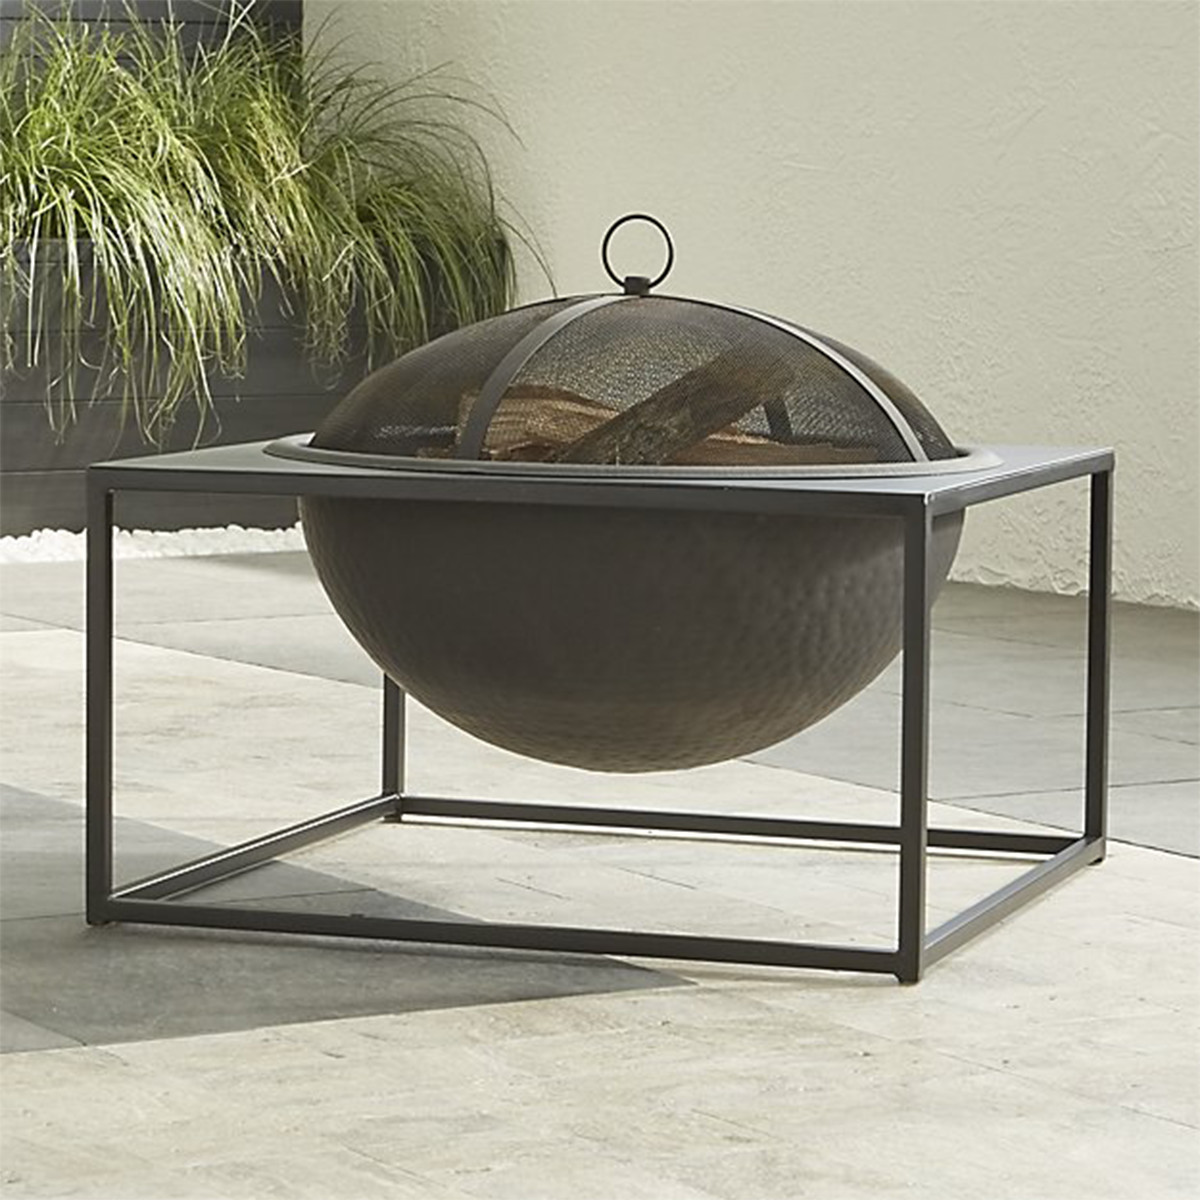 Crate and Barrel lare fire pit with cover photo